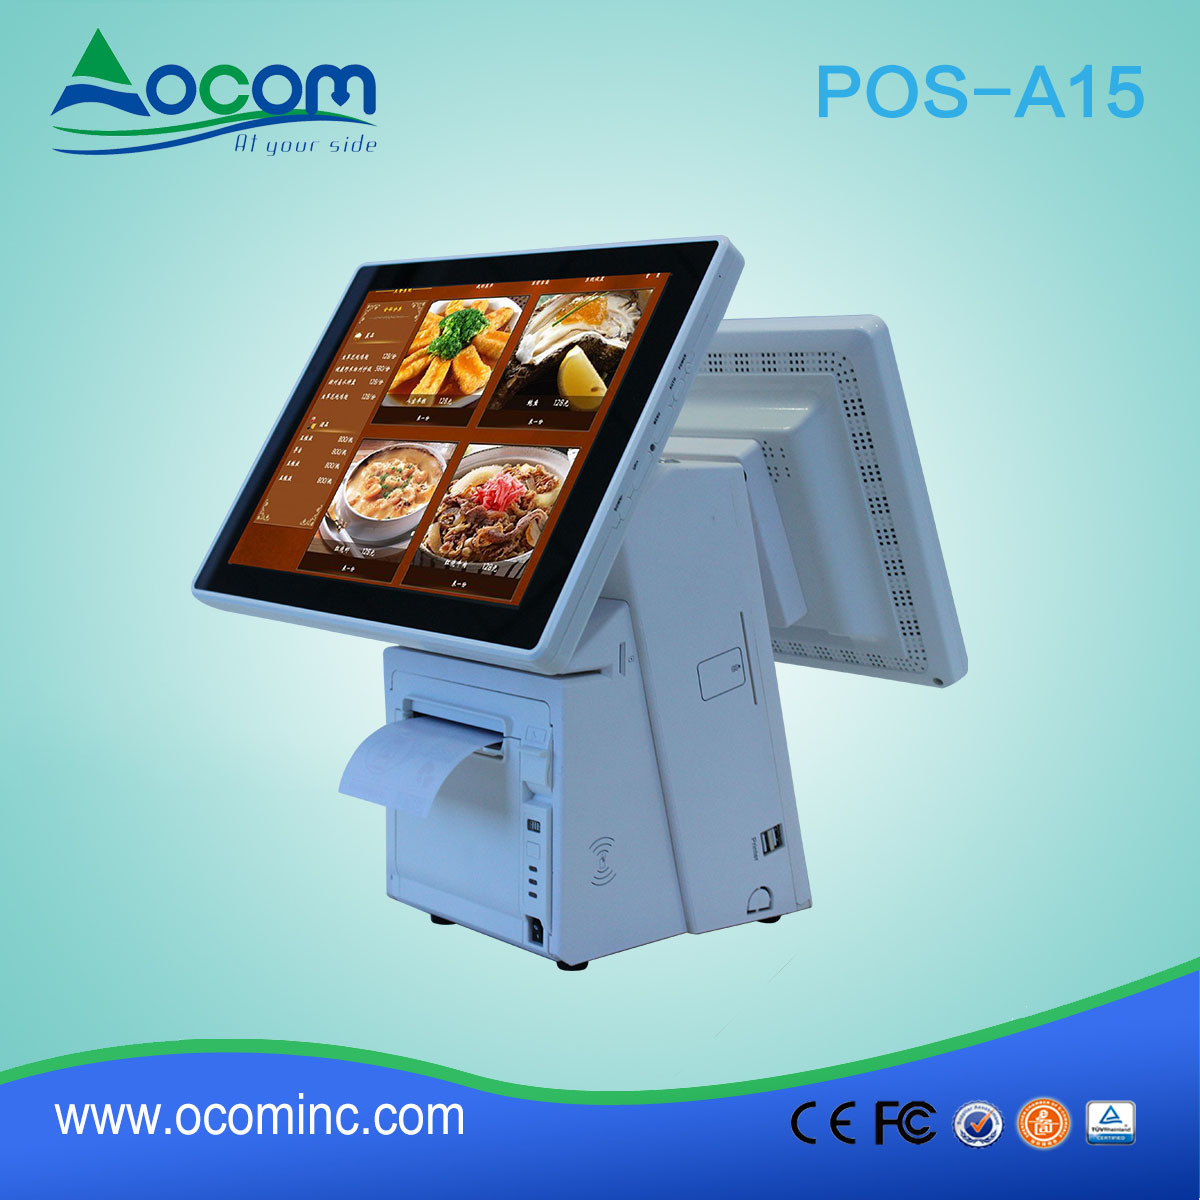 POS-A15 Electronic Cash Register/ POS PC Touch Screen All in One with Printer